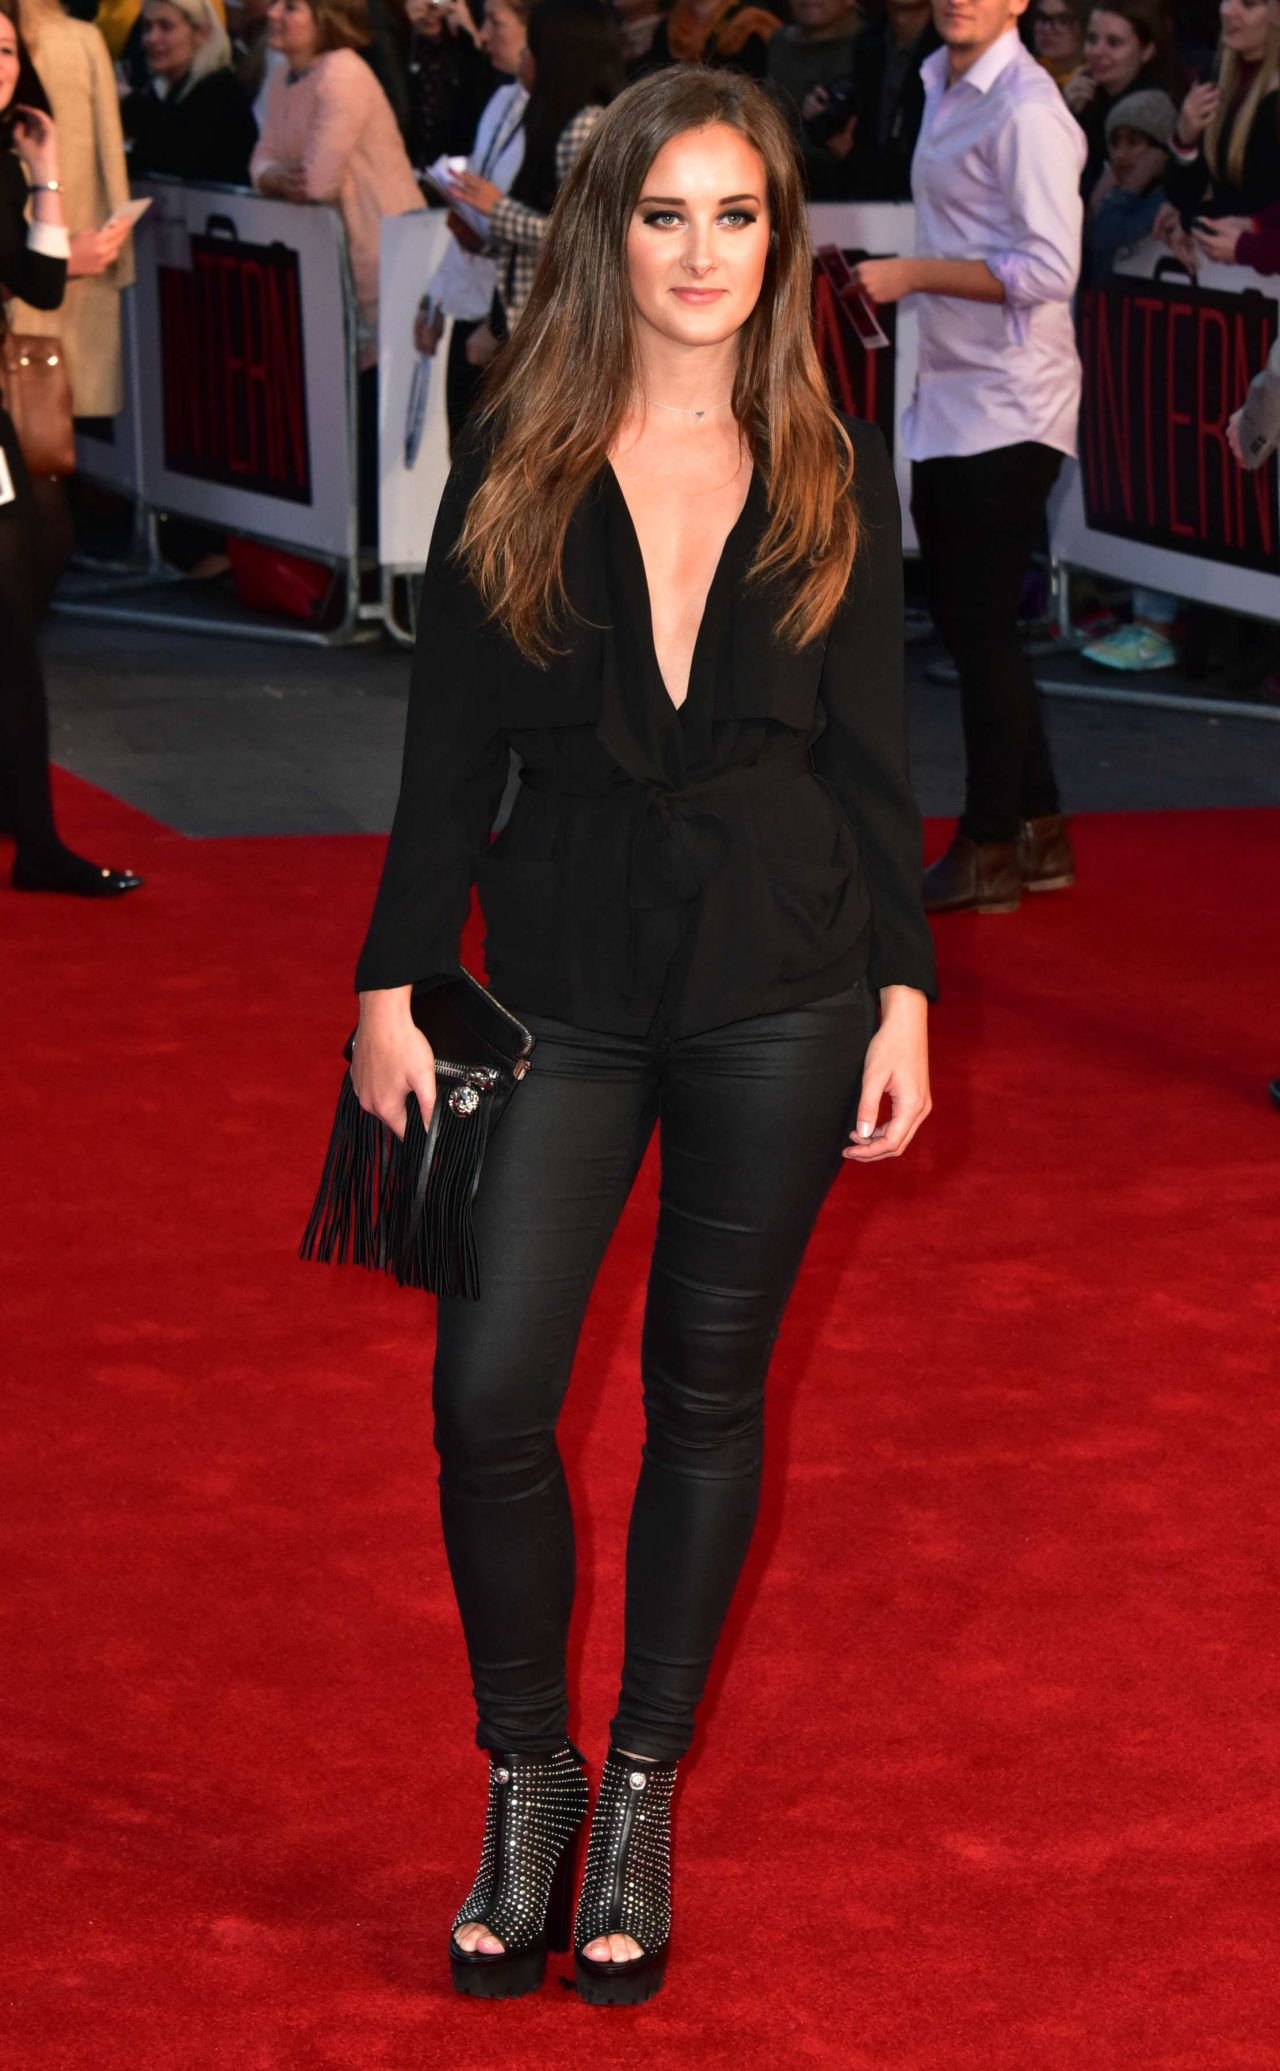 April Pearson The Intern Premiere In London